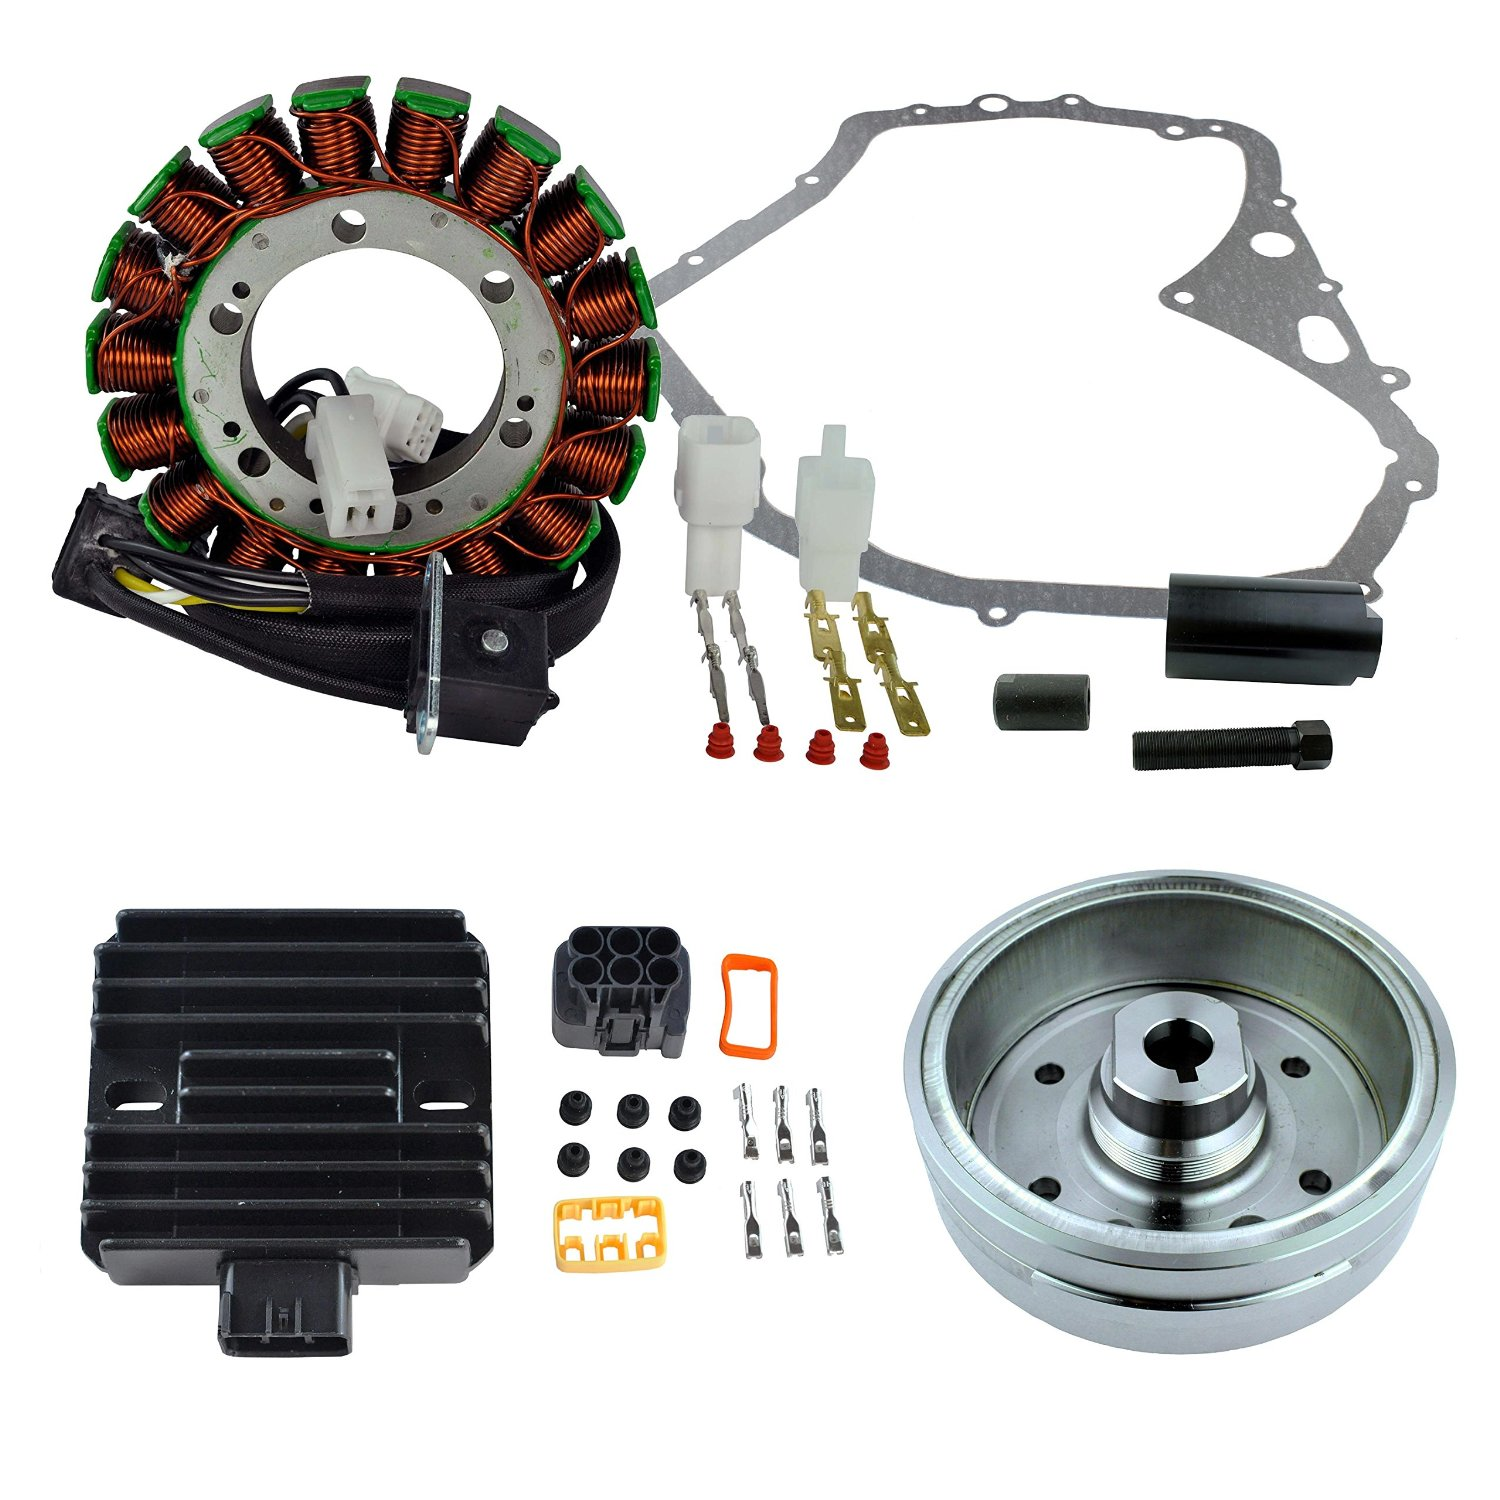 Kit Improved Flywheel + Puller + Stator + Voltage Regulator + Gasket For Suzuki LTF 400 Eiger 4x4 Manual 2002 2003 2004 2005 2006 2007